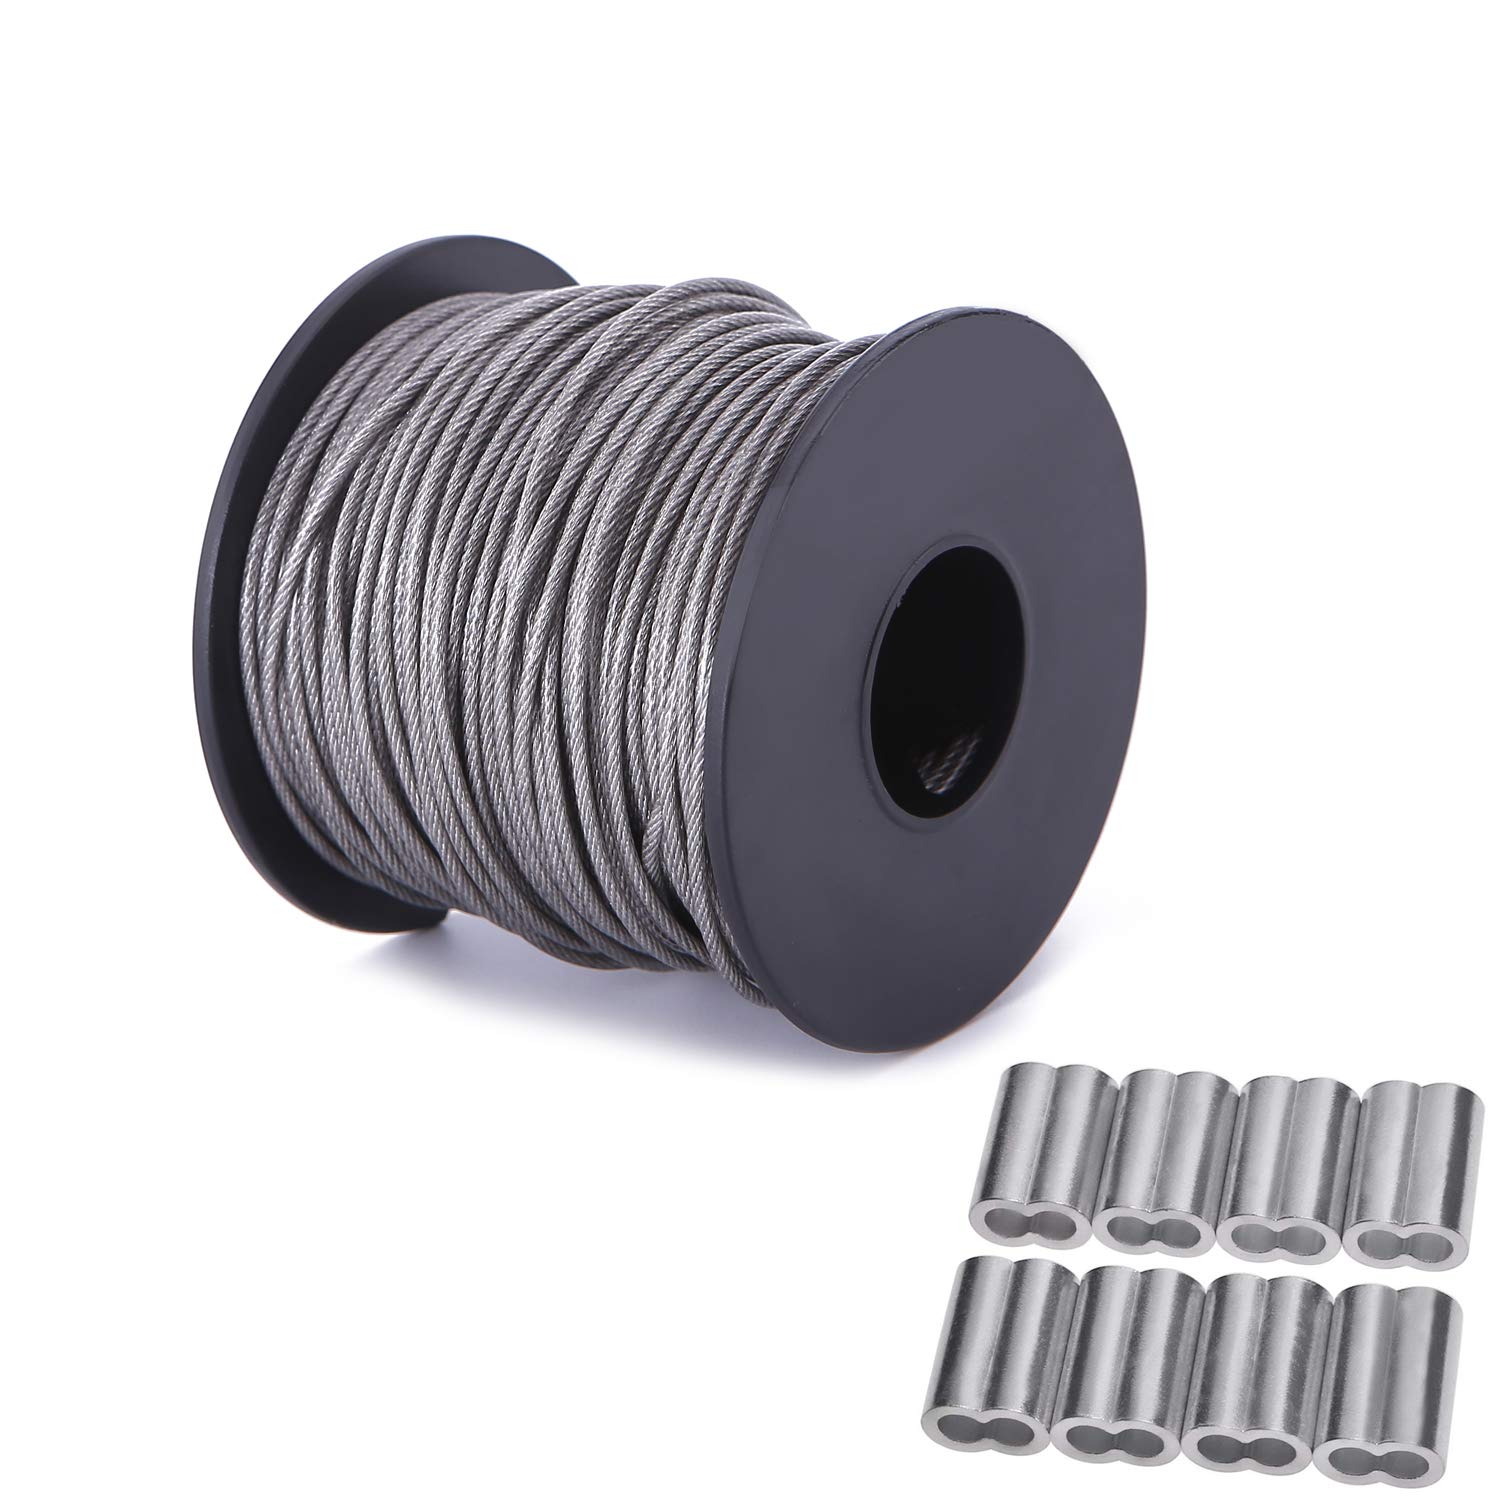 Ubilink Heavy Duty Vinyl Coated Stainless Steel Wire(50m) with Spool for Picture Frame Mirror Painting Hanging Objects with 20Pcs Aluminum Sleeve